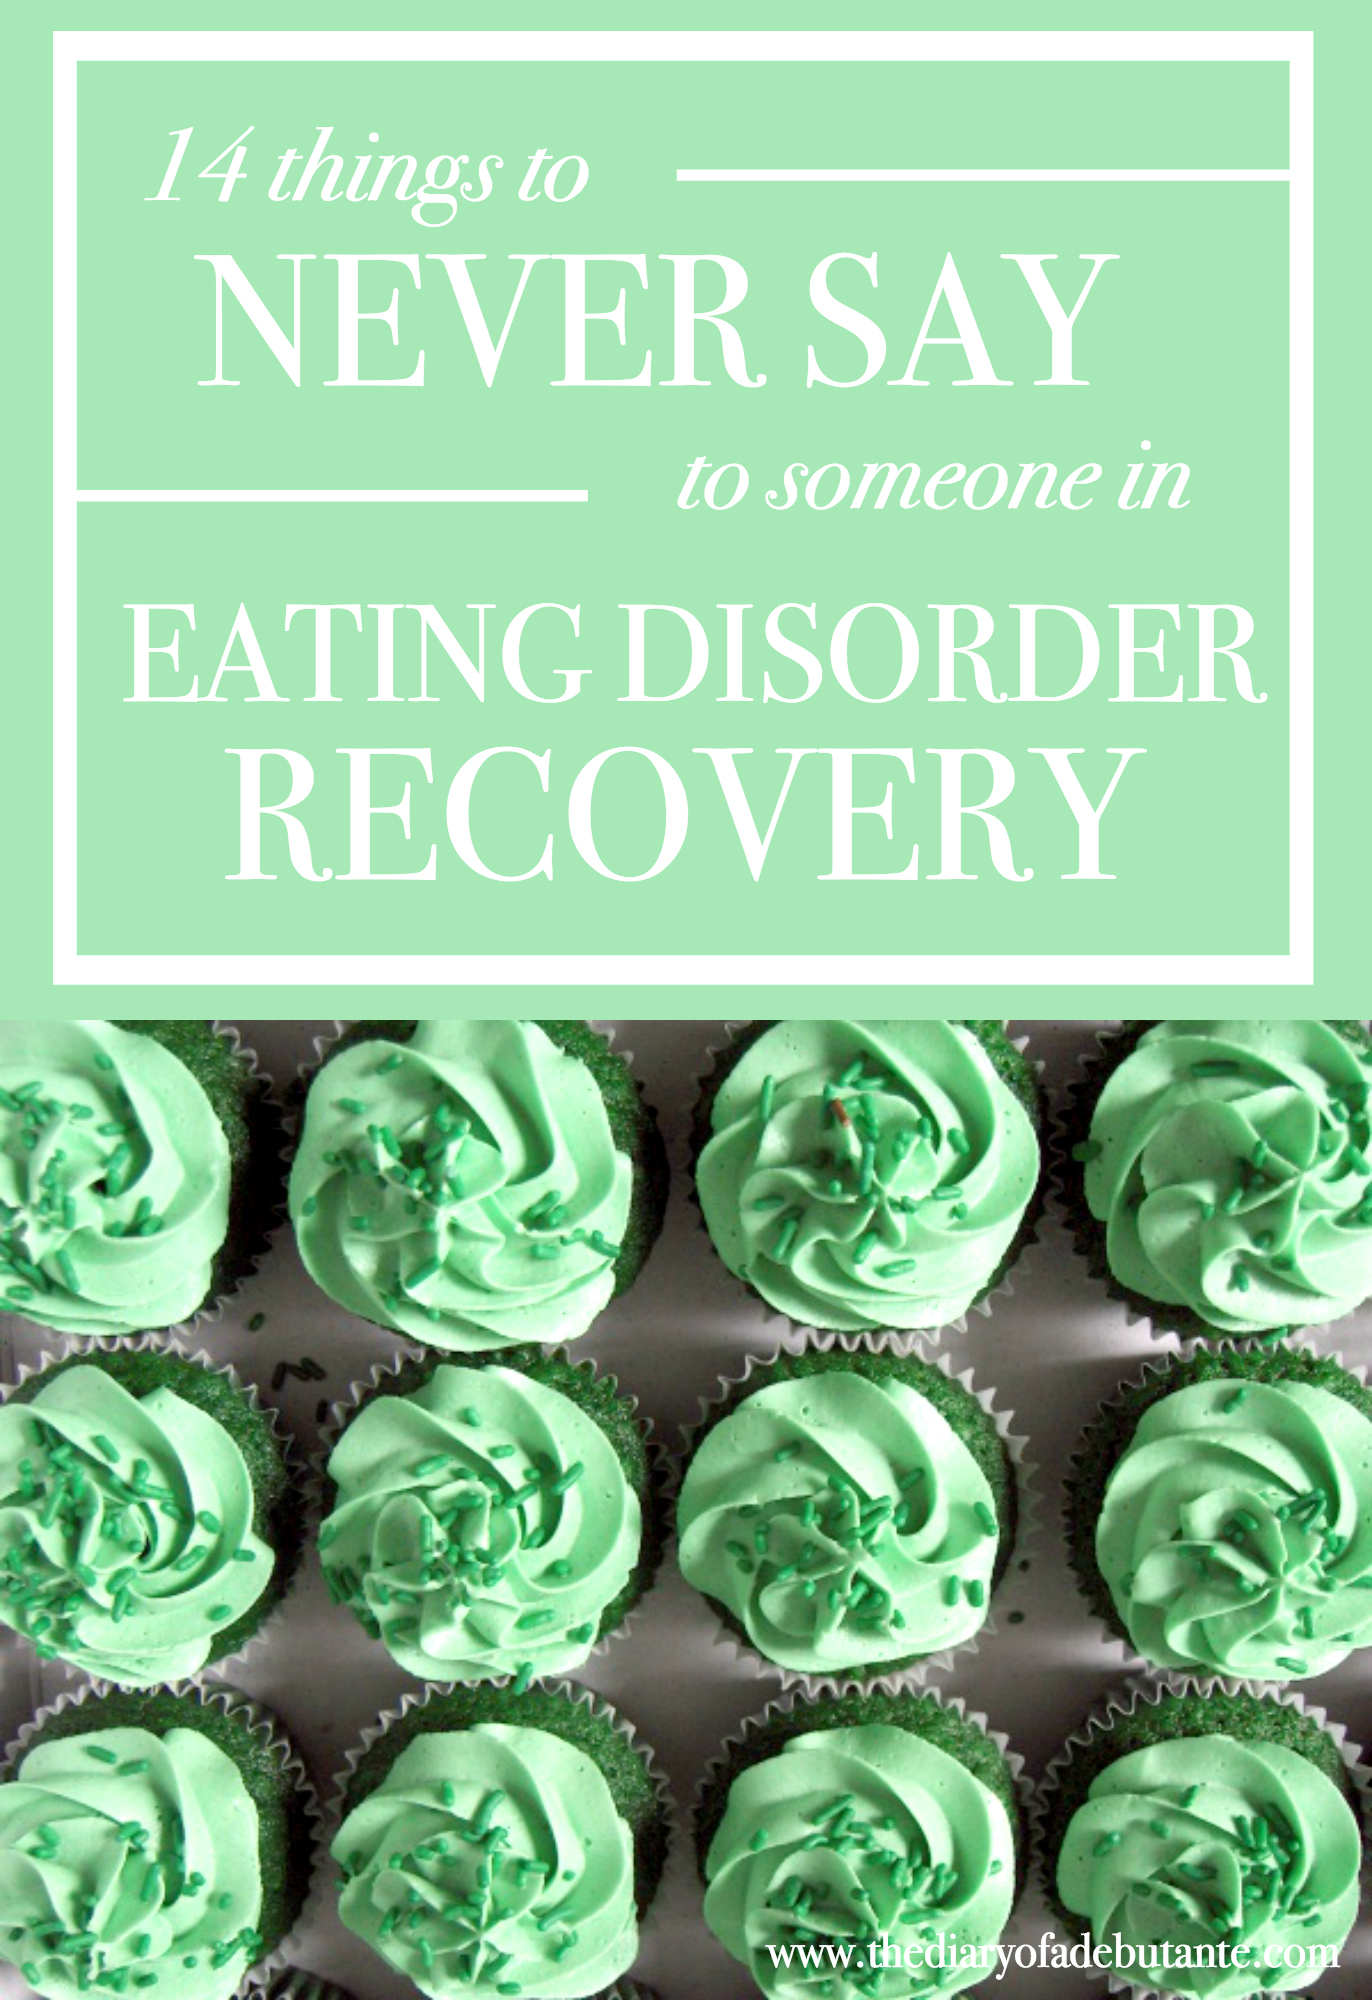 14 Things To Never Say To Someone With An Eating Disorder